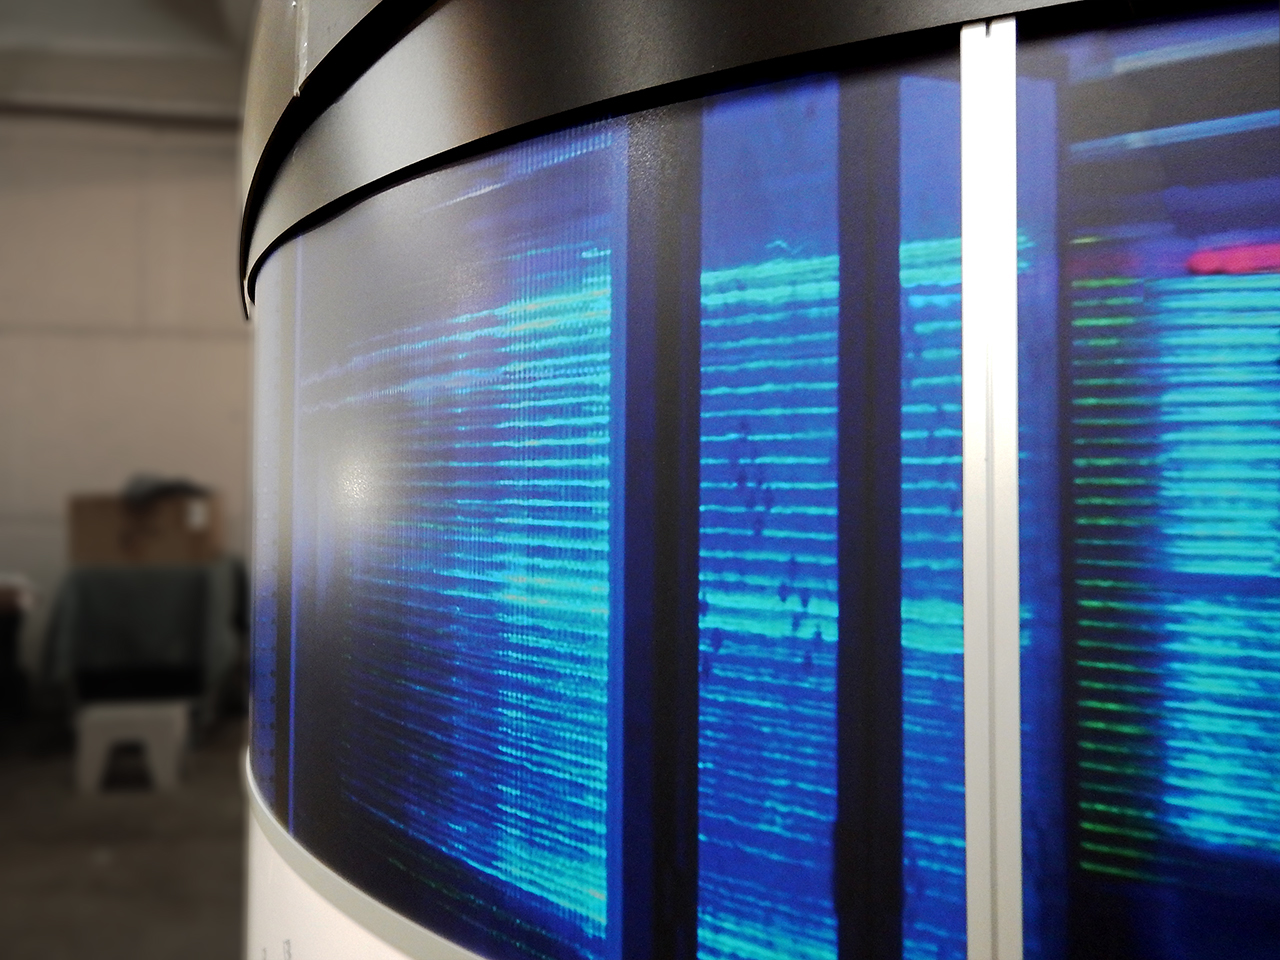 museum panels showing streaks of blue light